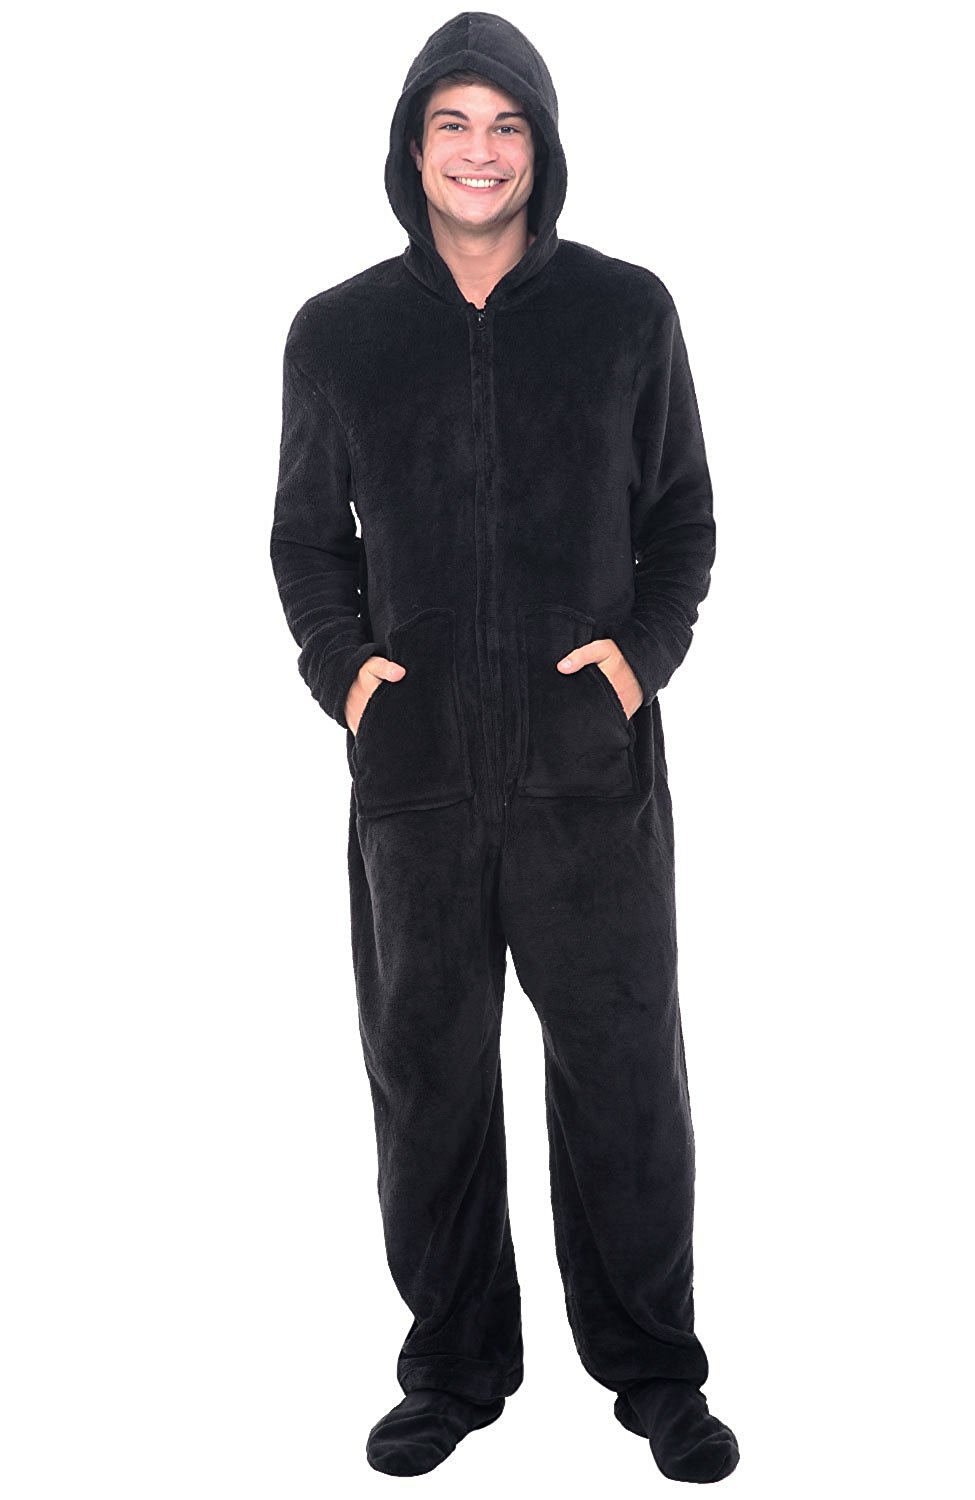 81d4b187a2 ... Adult Hooded Non Footed Jumpsuit PJS Sleepwear. null. null. Get  Quotations · Alexander Del Rossa Mens Fleece Onesie